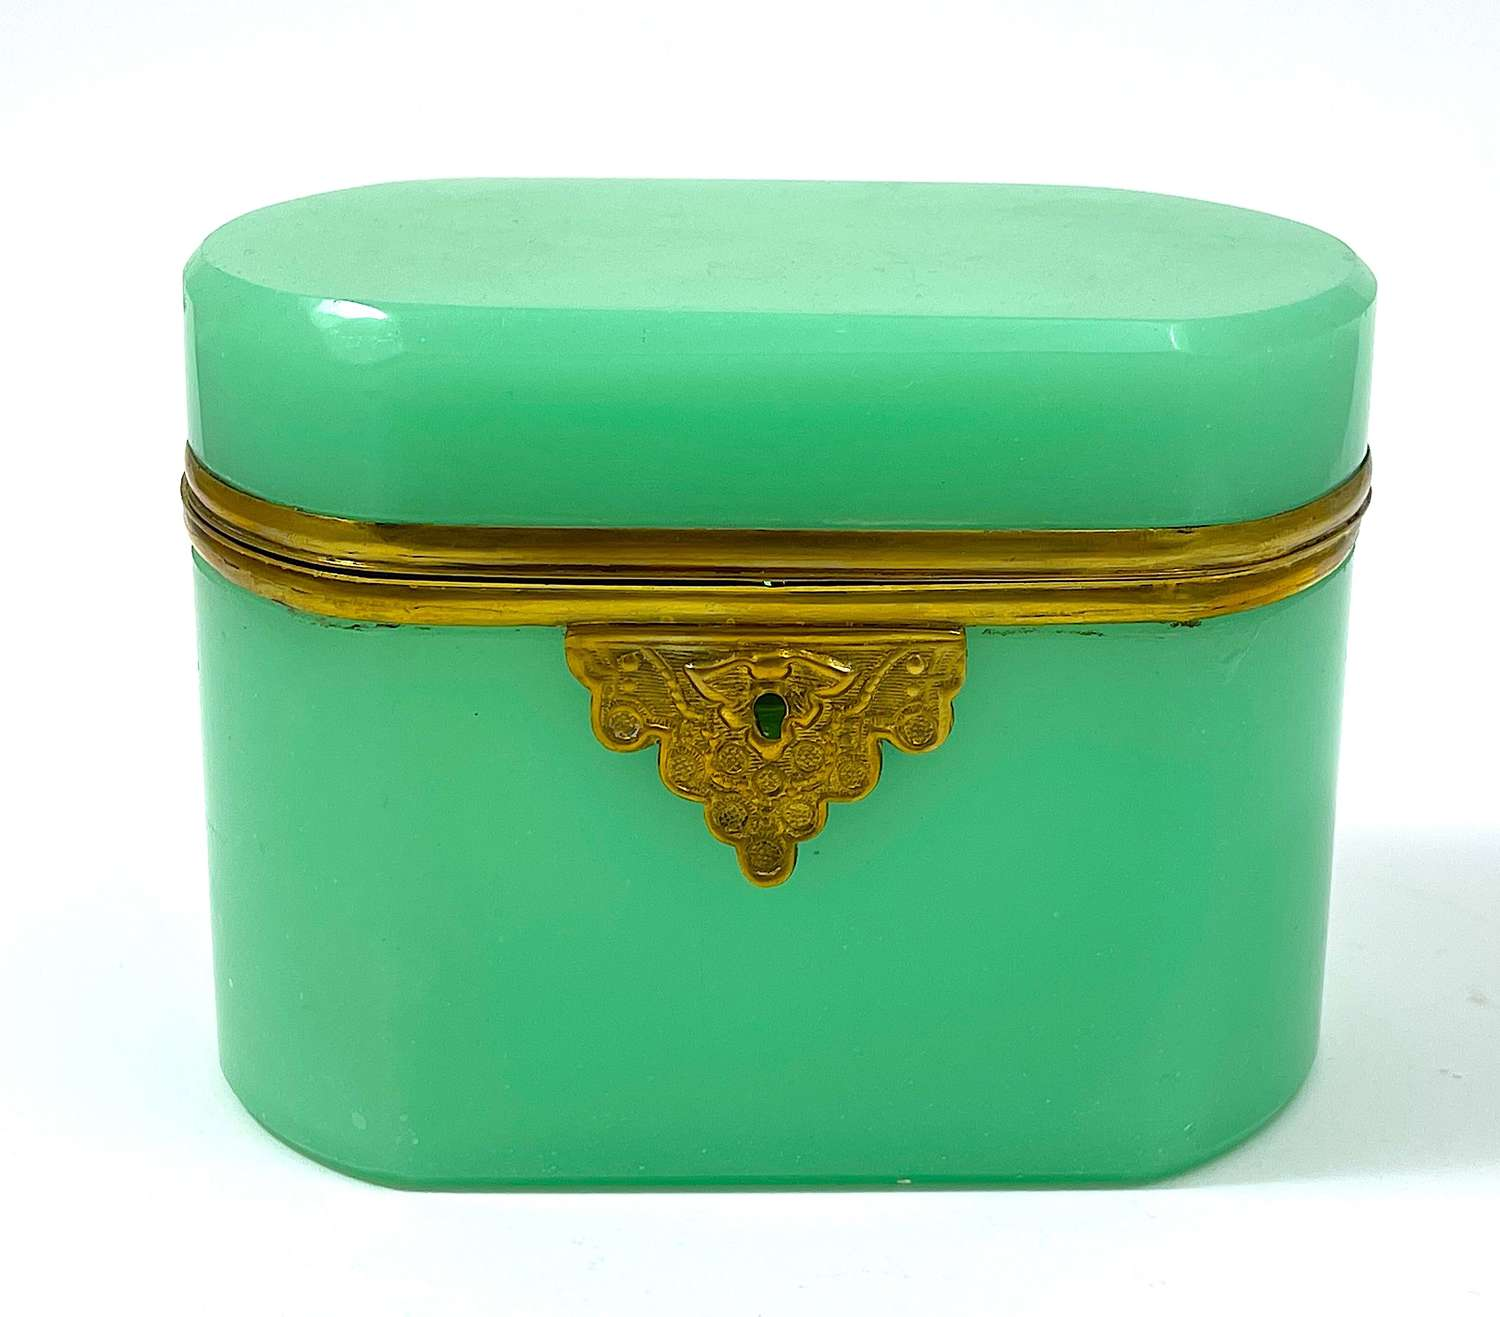 Antique French Green Opaline Glass Casket